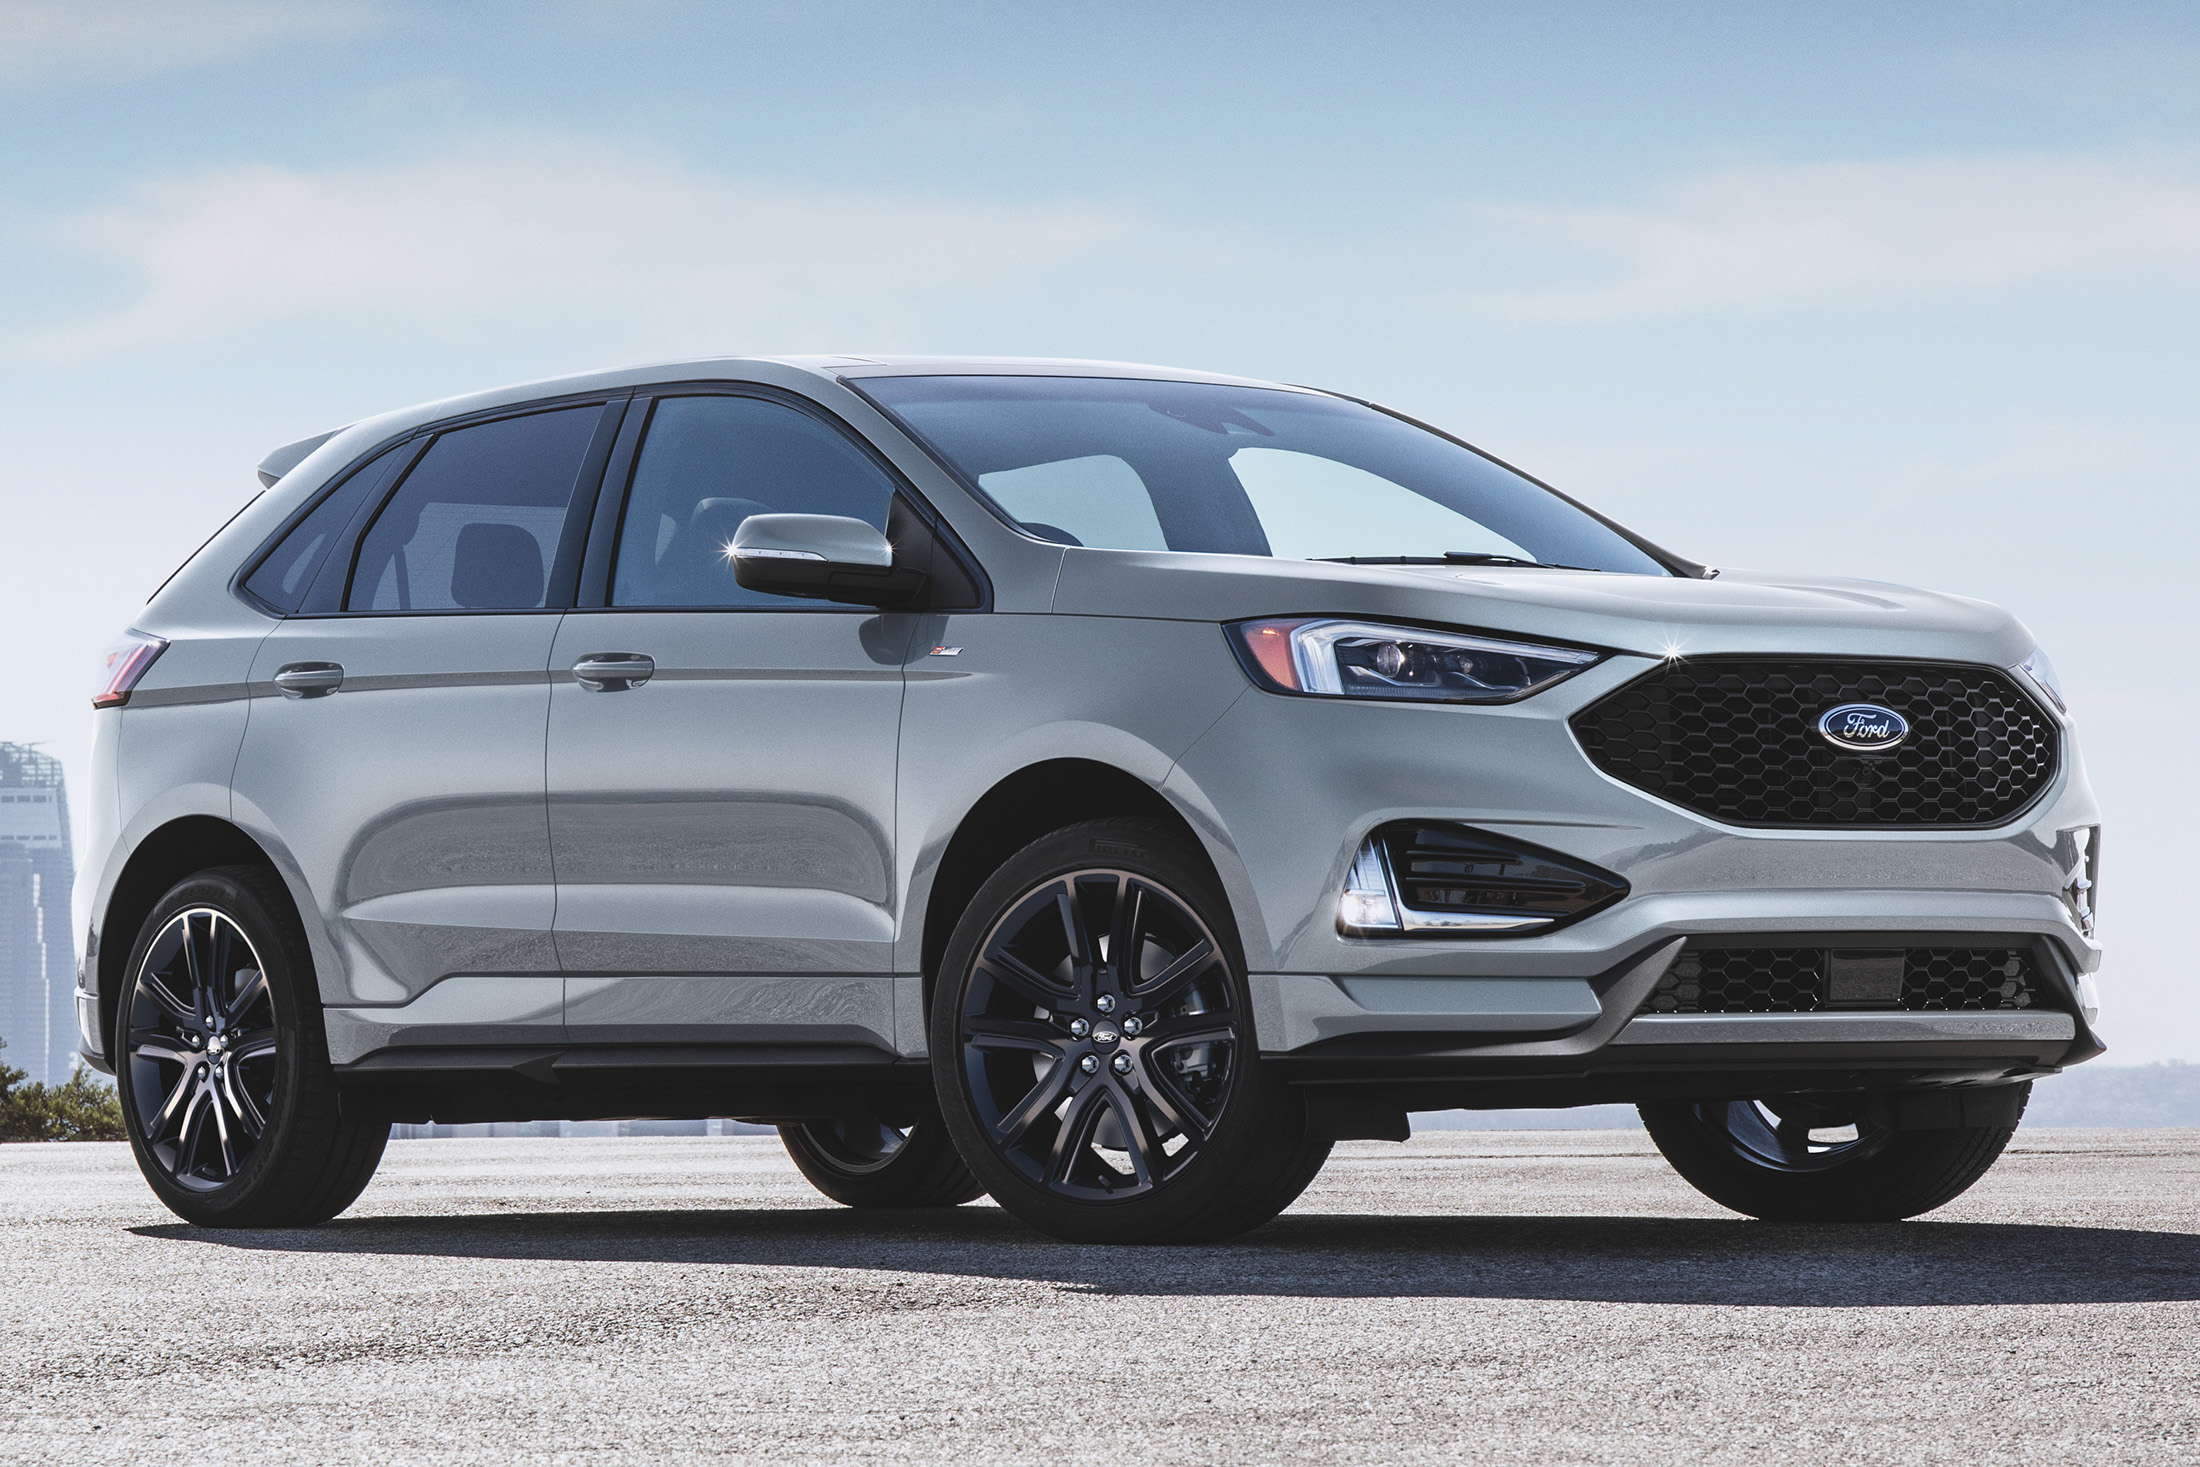 2020 Ford Edge ST-Line: An Edge With Less of an Edge